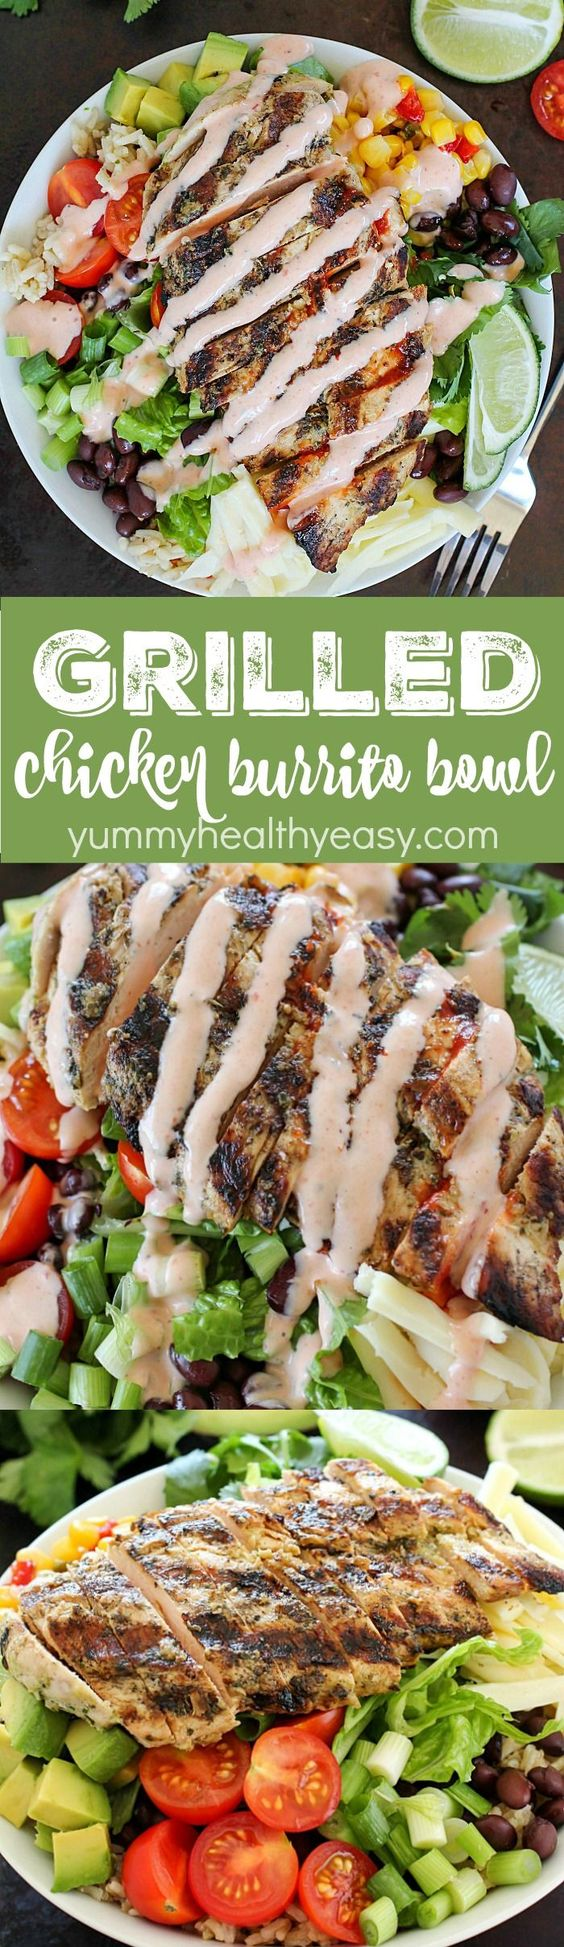 everything you love about burritos into a yummy chicken burrito bowl ...